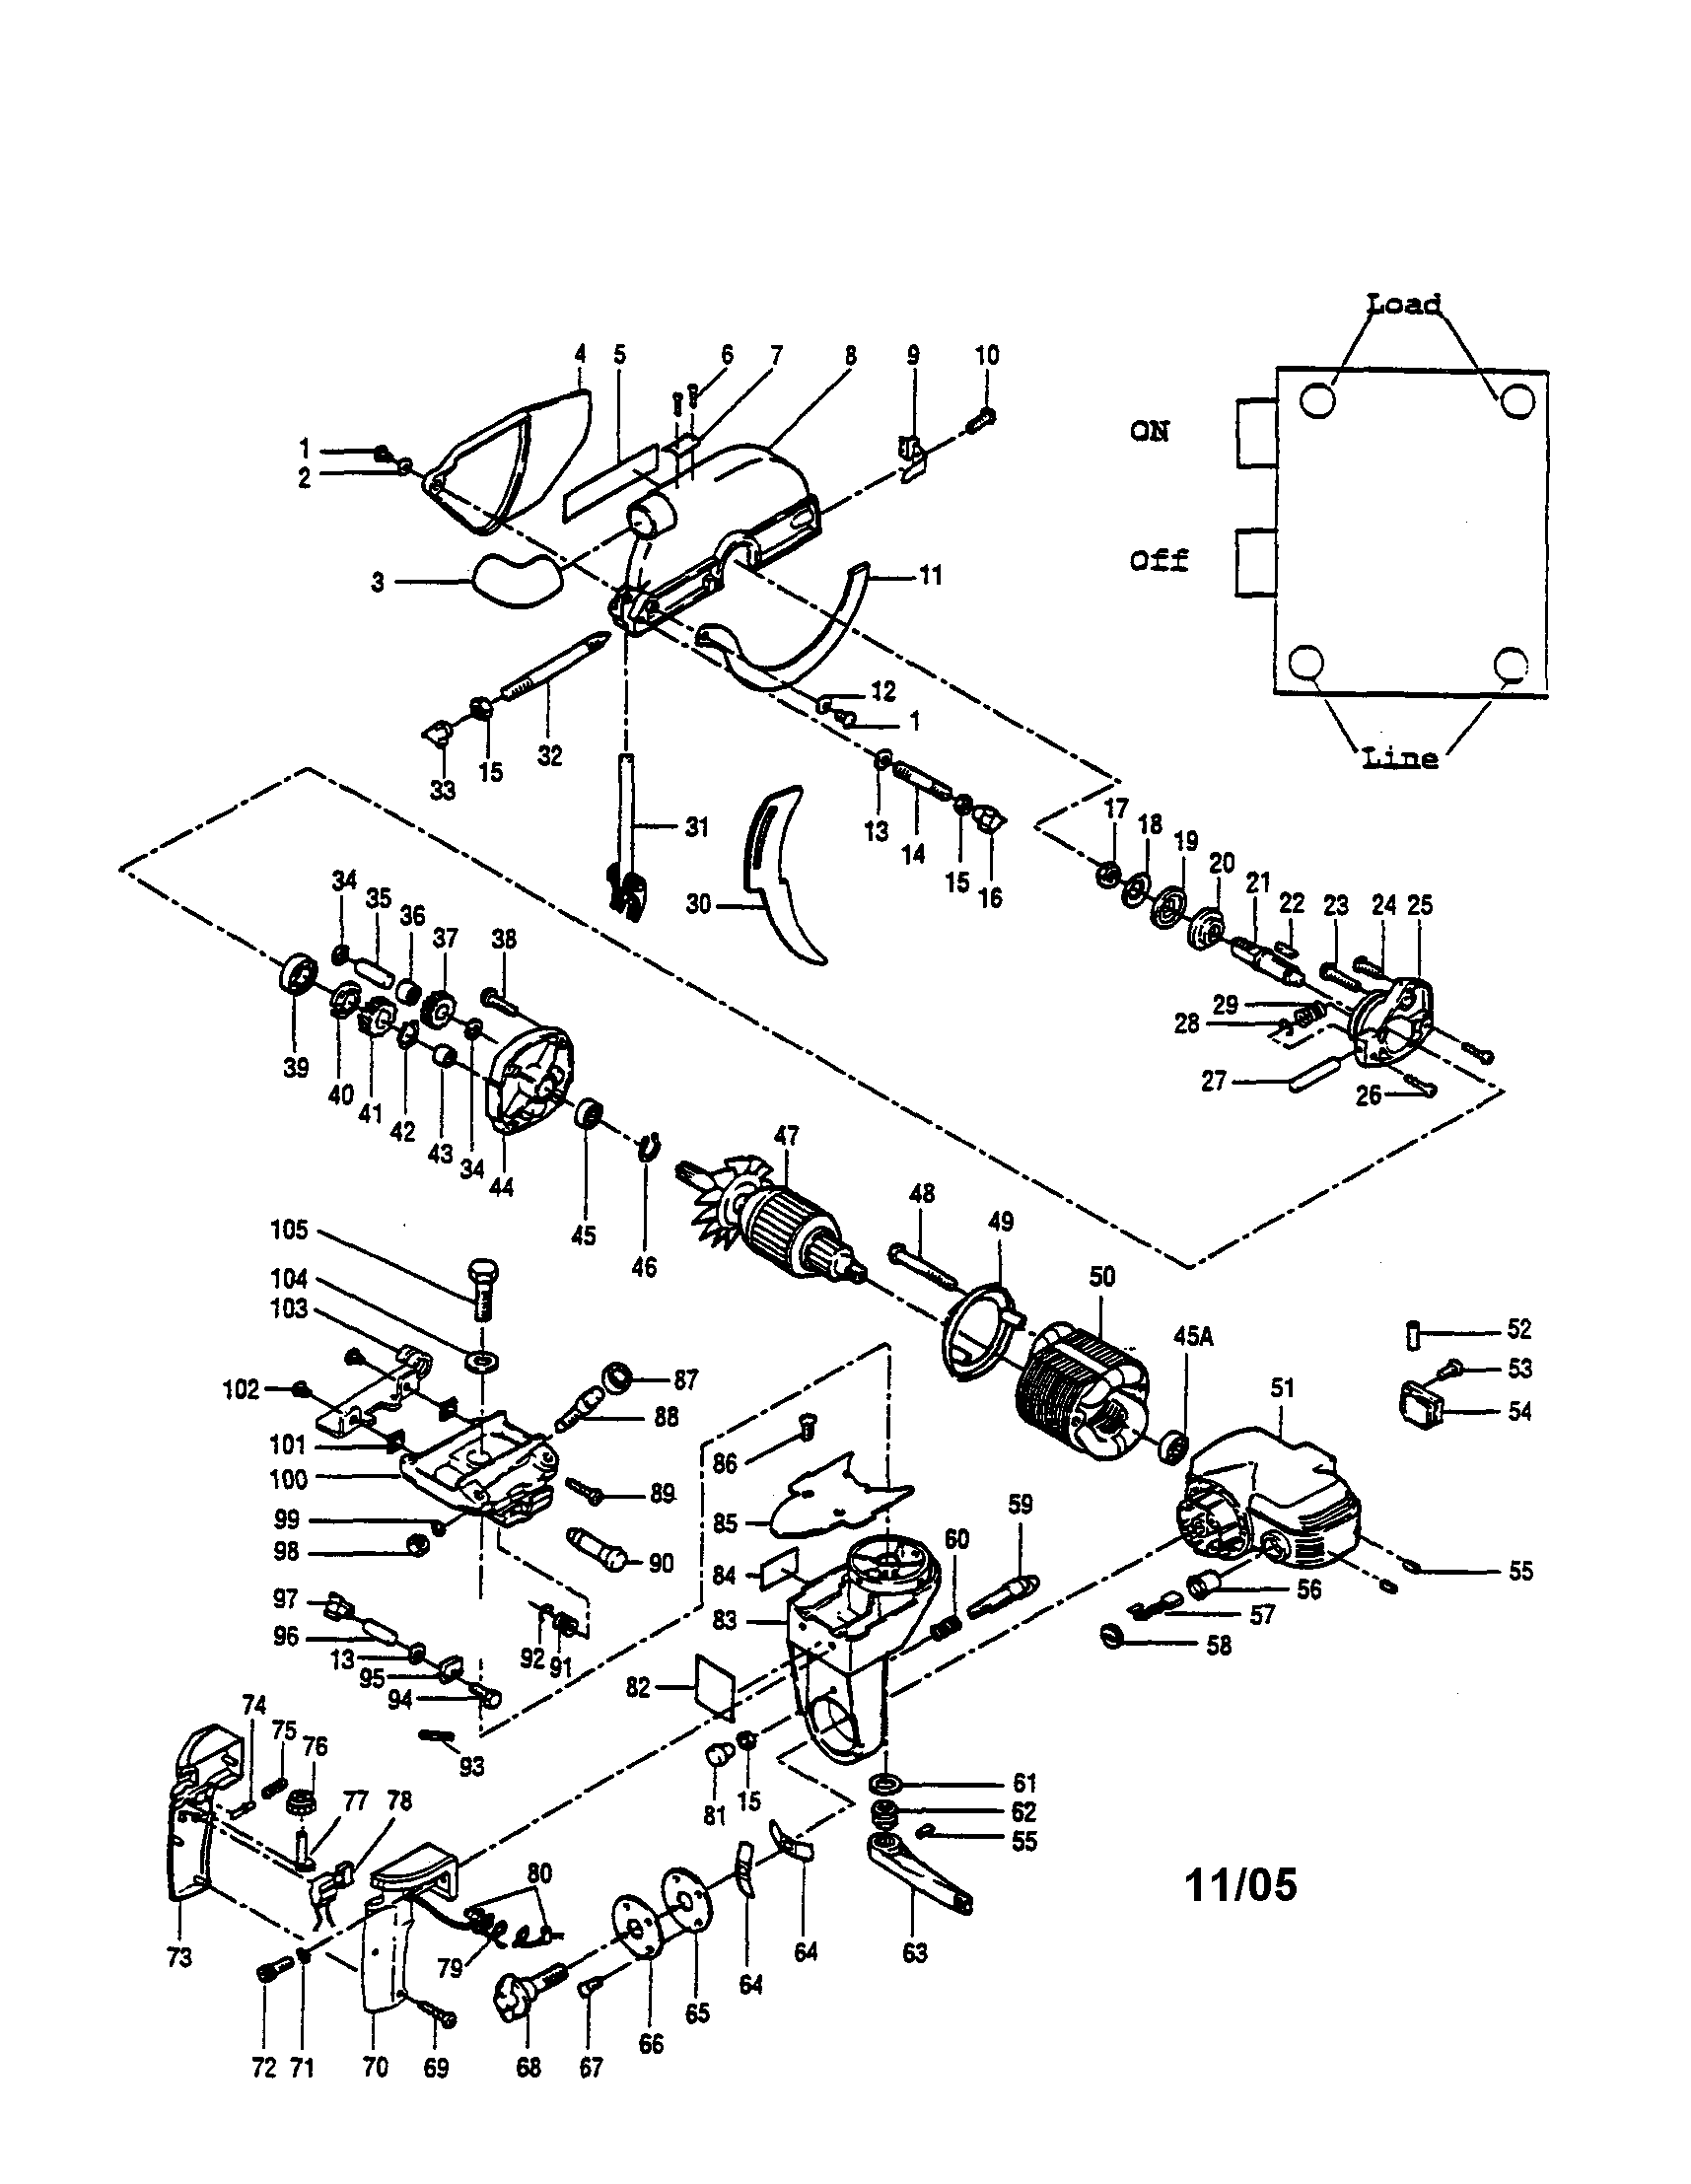 Ryobi RA-202 blade guard/armature/motor housing diagram